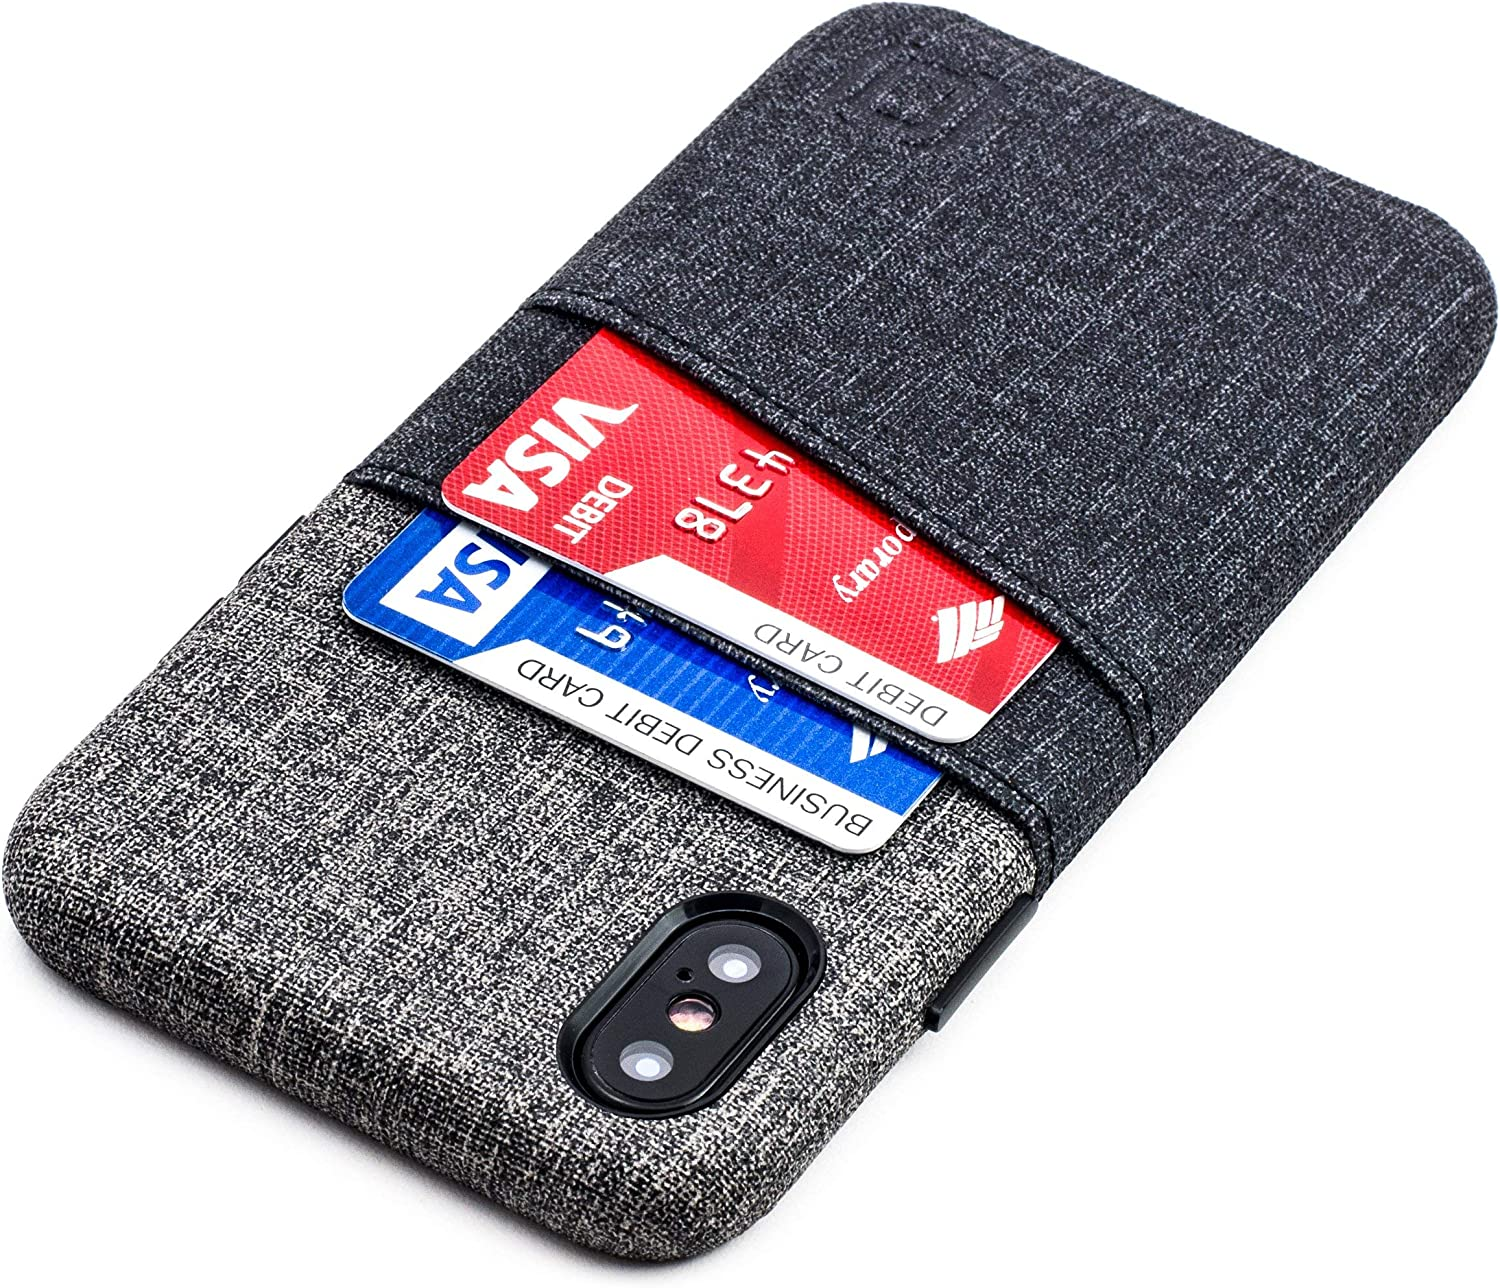 Dockem iPhone X/XS Wallet Case: Built-in Metal Plate for Magnetic Mounting & 2 Credit Card Holder Slots (5.8